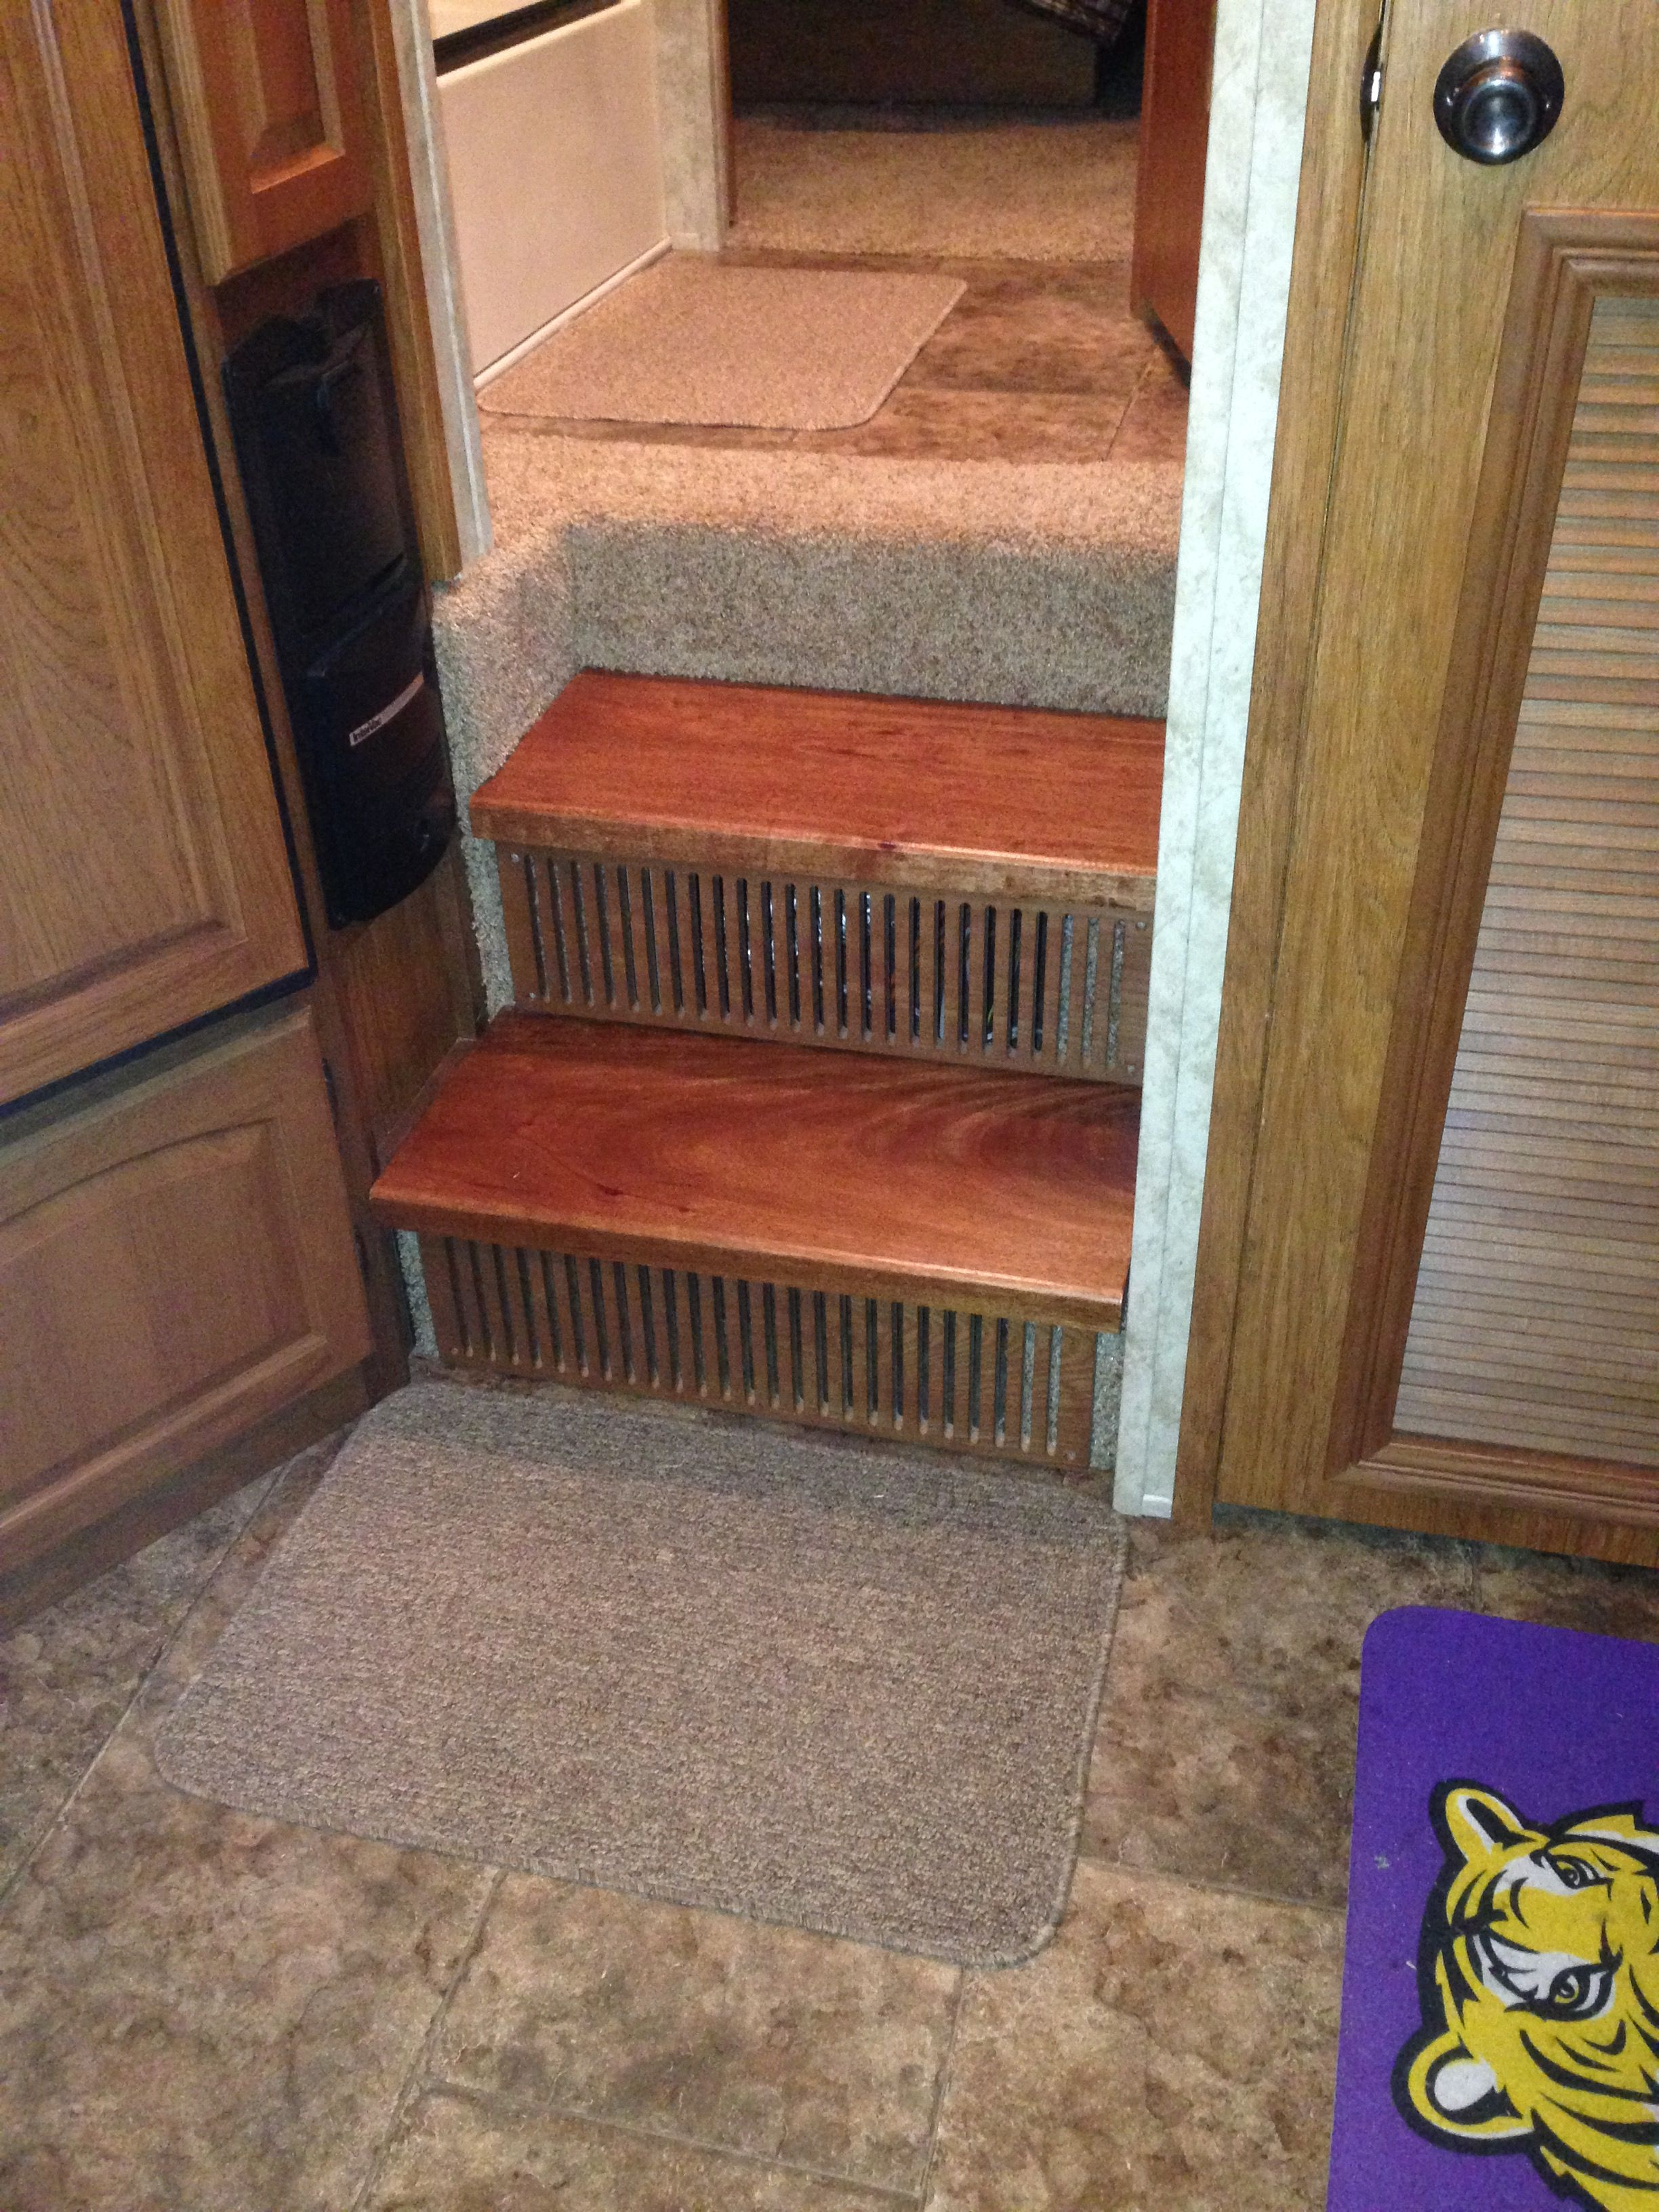 Best Changed The Steps In The Rv From Carpet To 2 Thick Steps 400 x 300